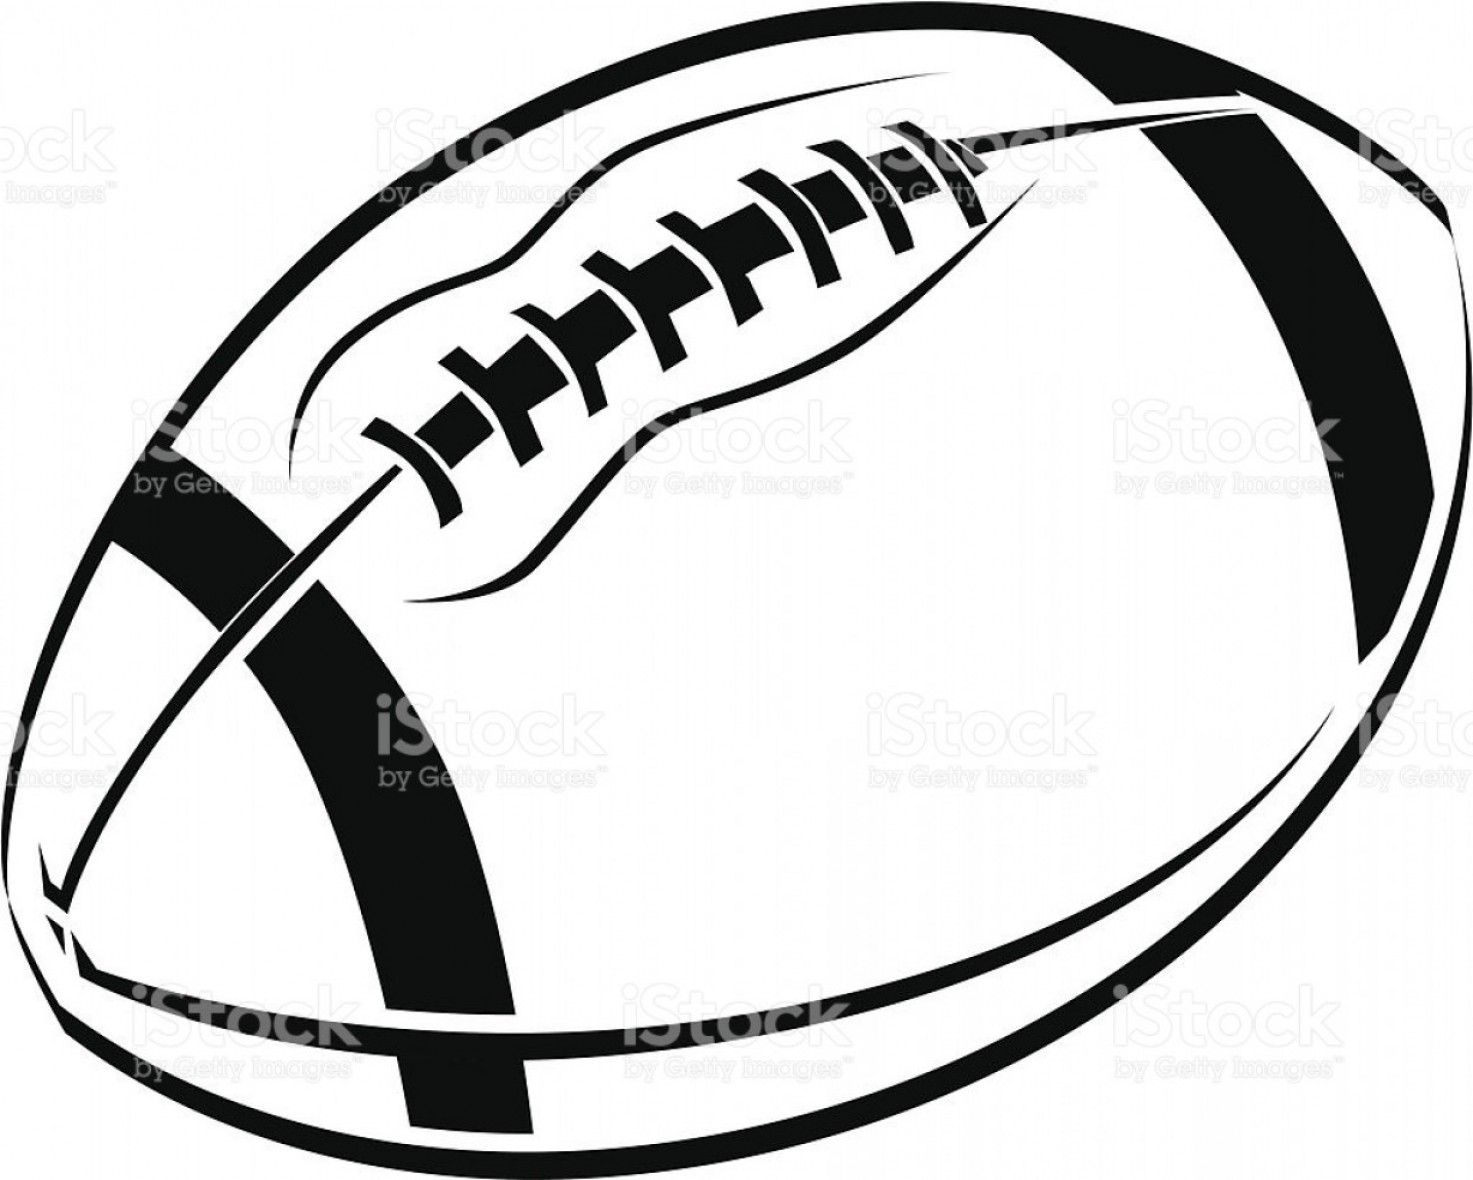 Black And White Line Art Drawing Of An American Football.